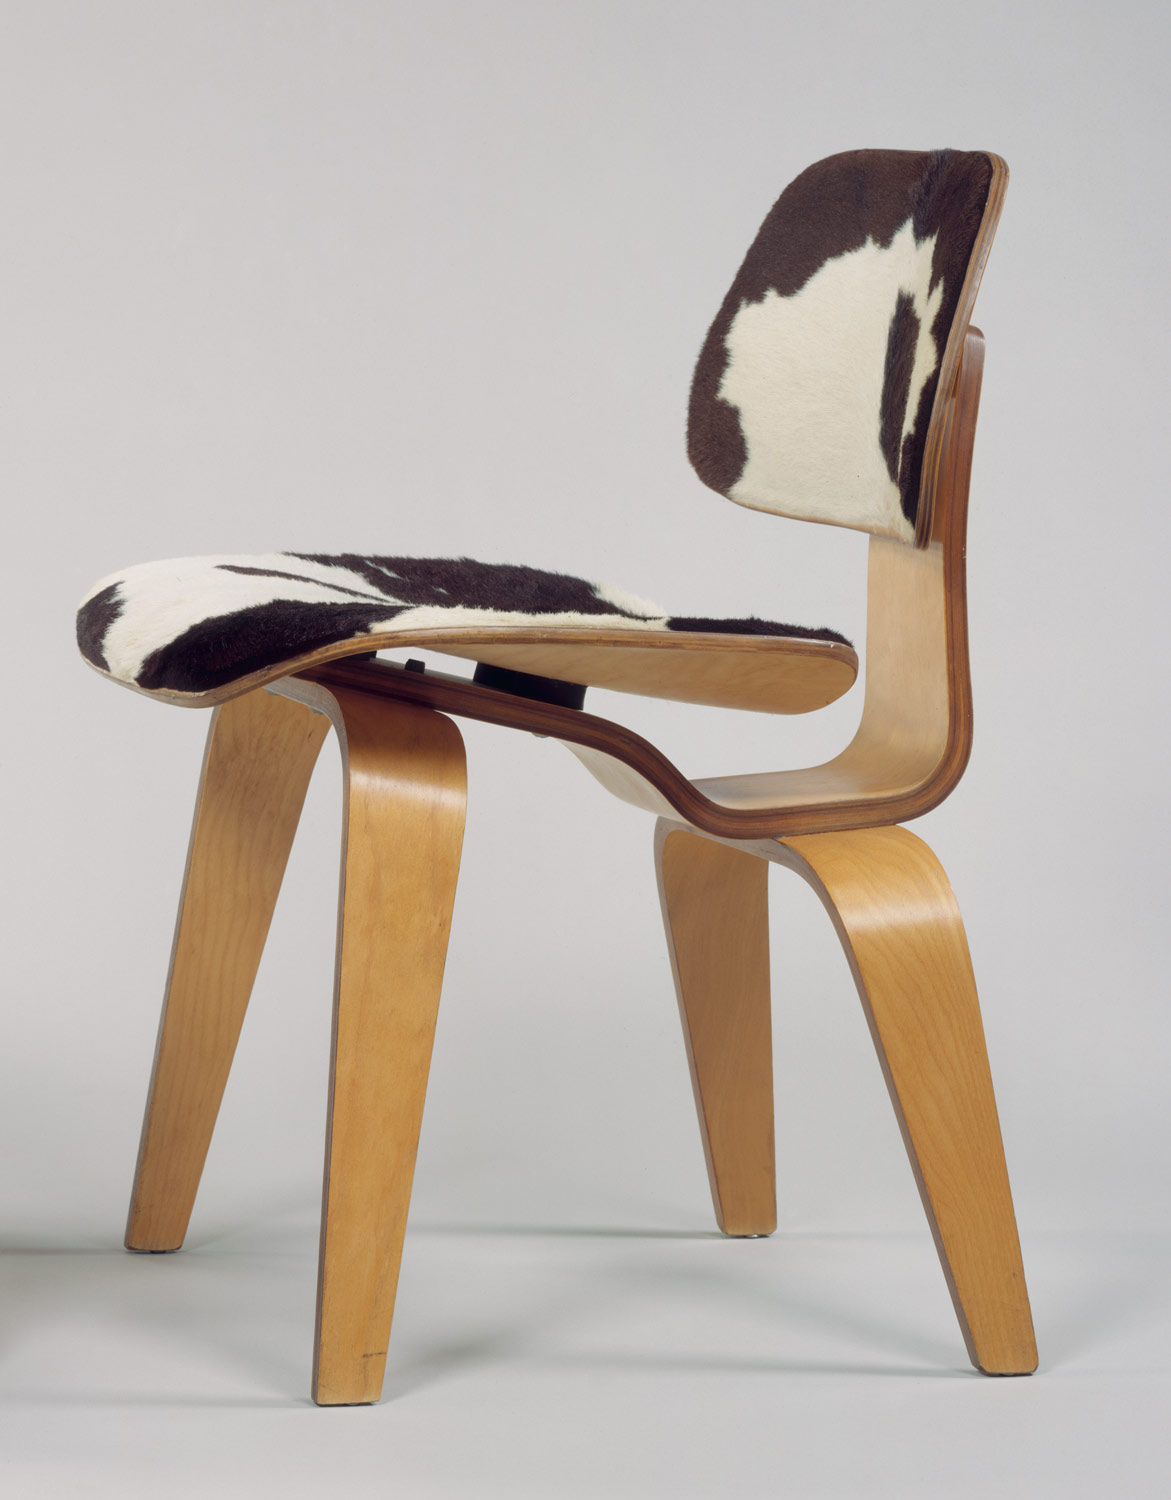 Charles and ray eames mid century modern hudson valley for Chaise design charles eames